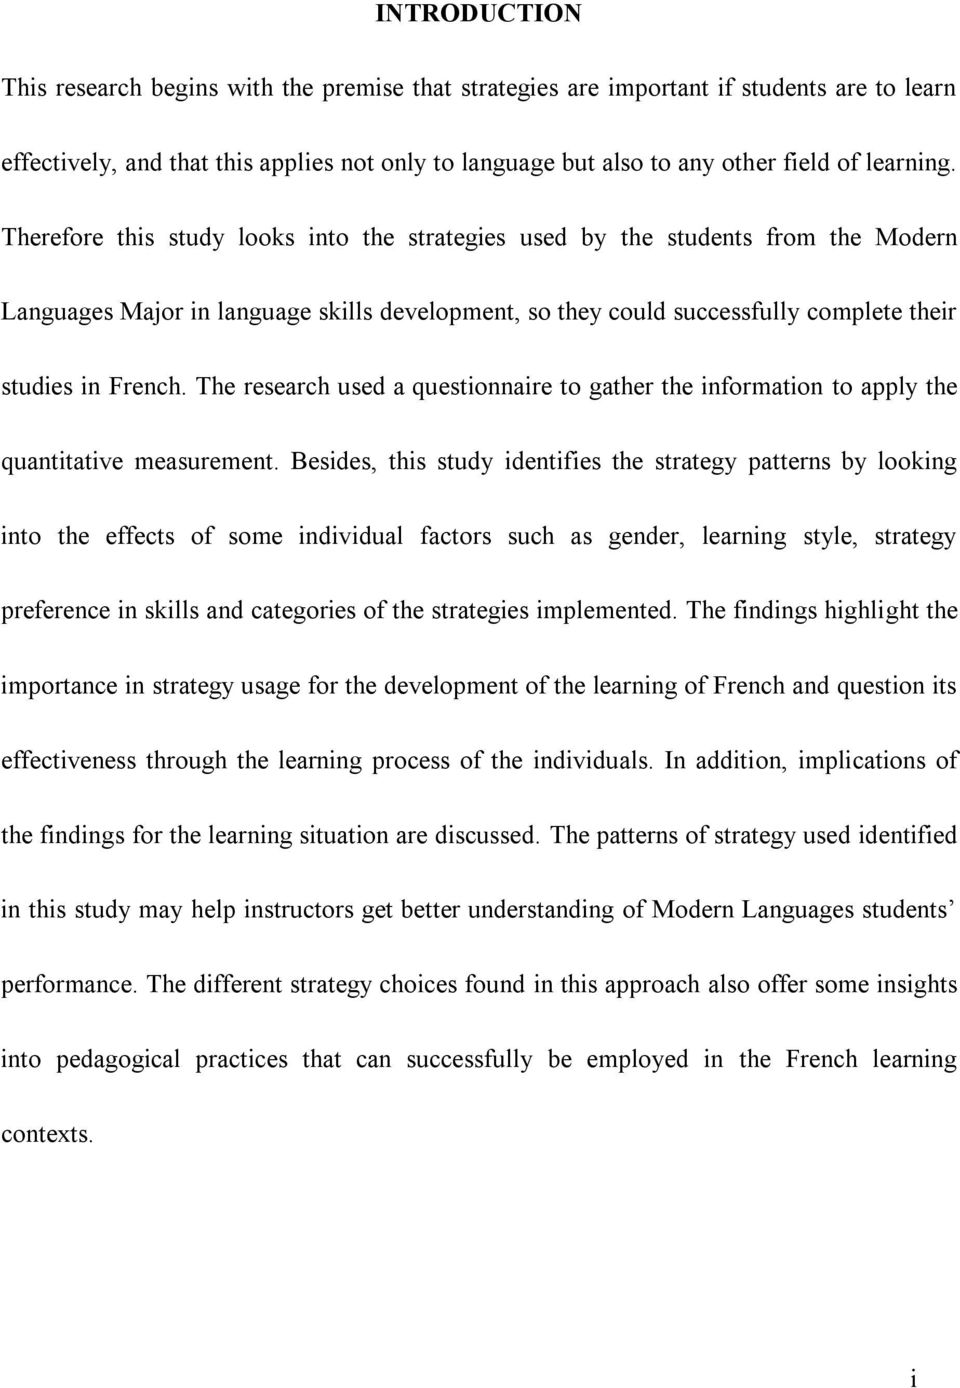 Therefore this study looks into the strategies used by the students from the Modern Languages Major in language skills development, so they could successfully complete their studies in French.